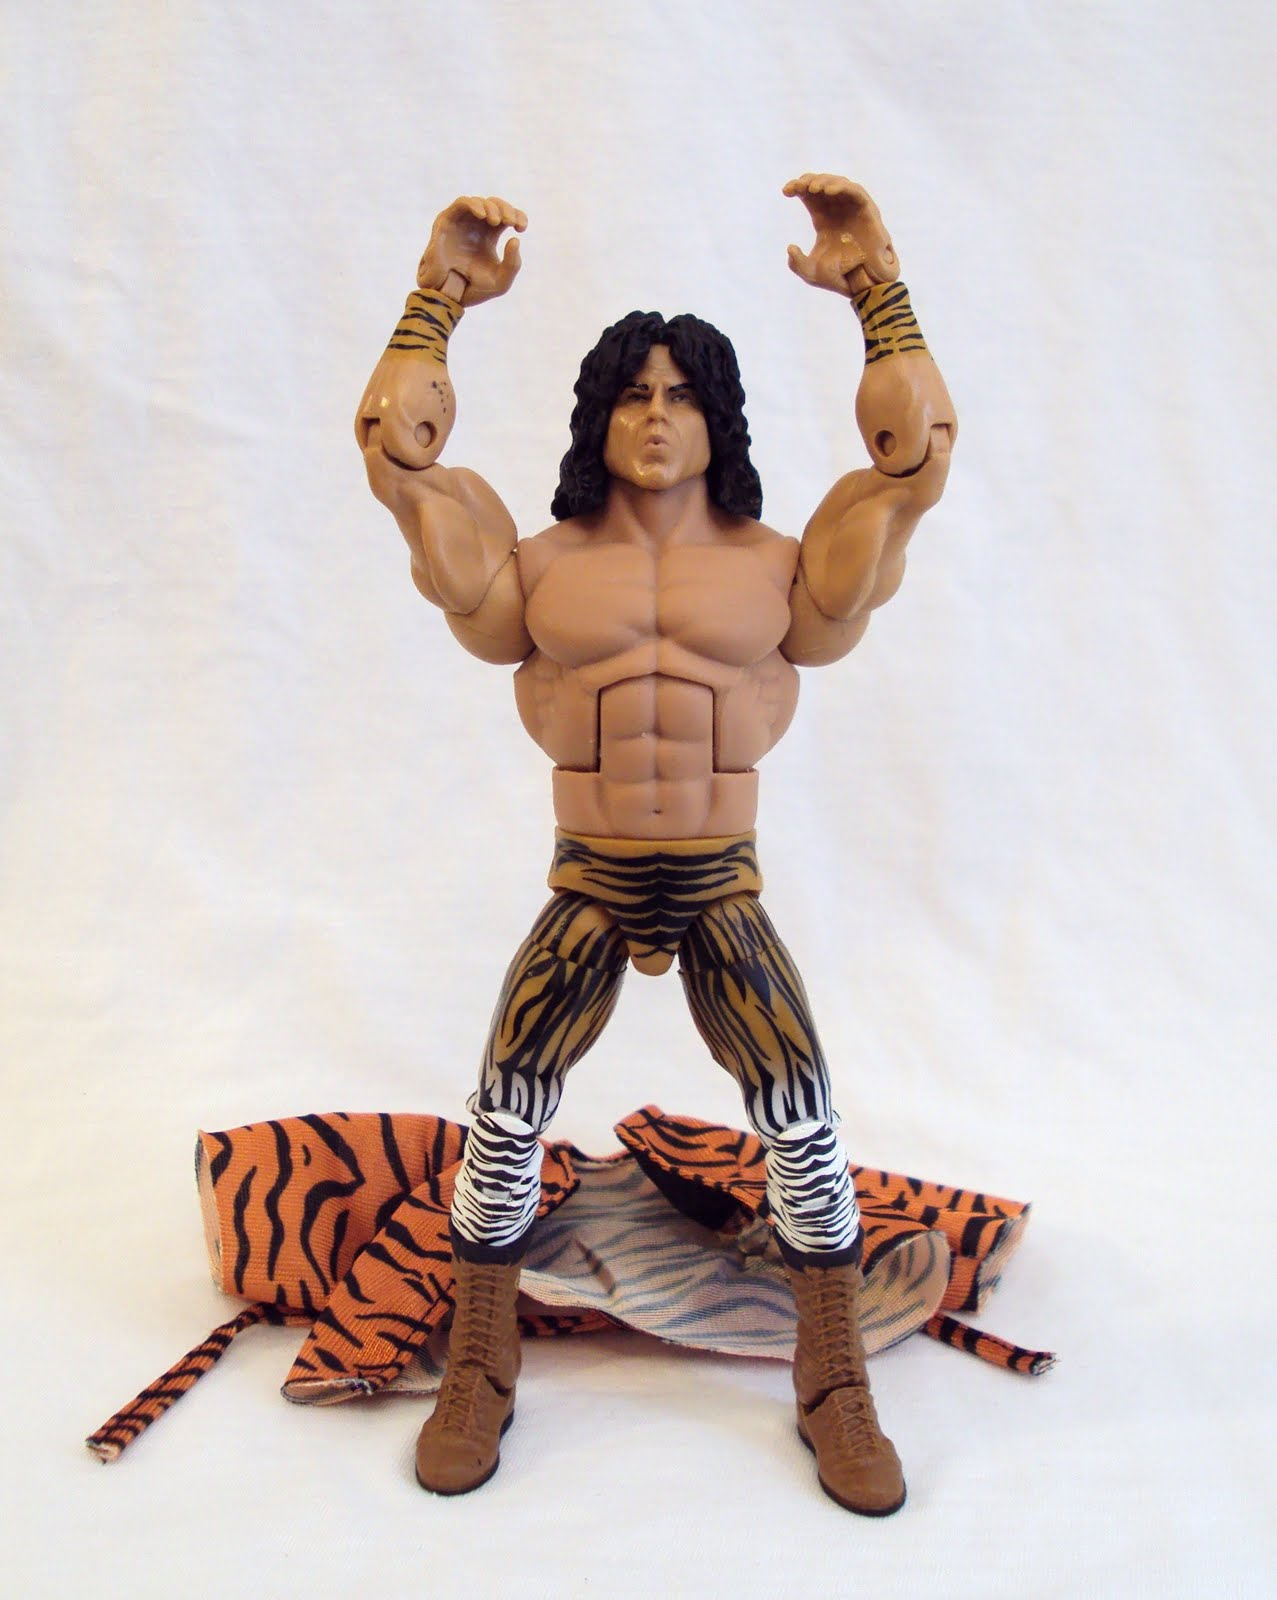 the paint on him is impressive with the tiger pattern spread across his tights and wrists his skin is molded in the correct color as is his hair